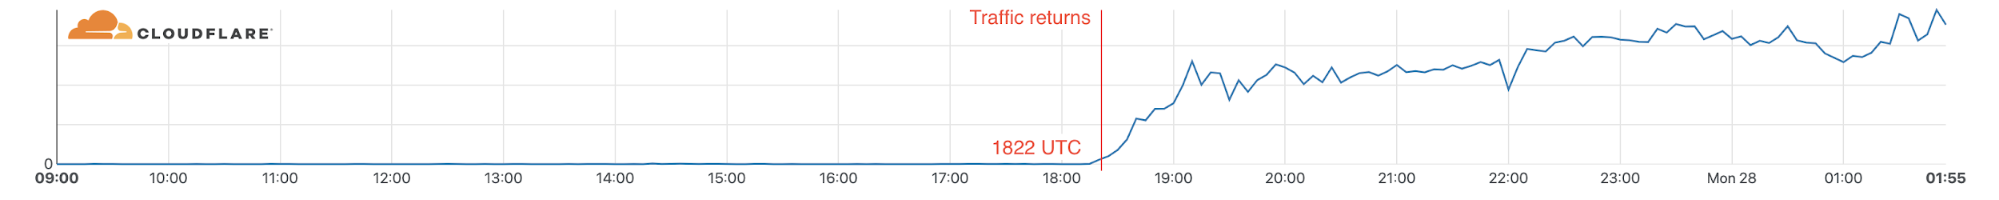 We saw traffic from Nashville via AT&T start to recover over a 45 minute period on December 27 at 1822 UTC making the total outage 2 days and 34 minutes.